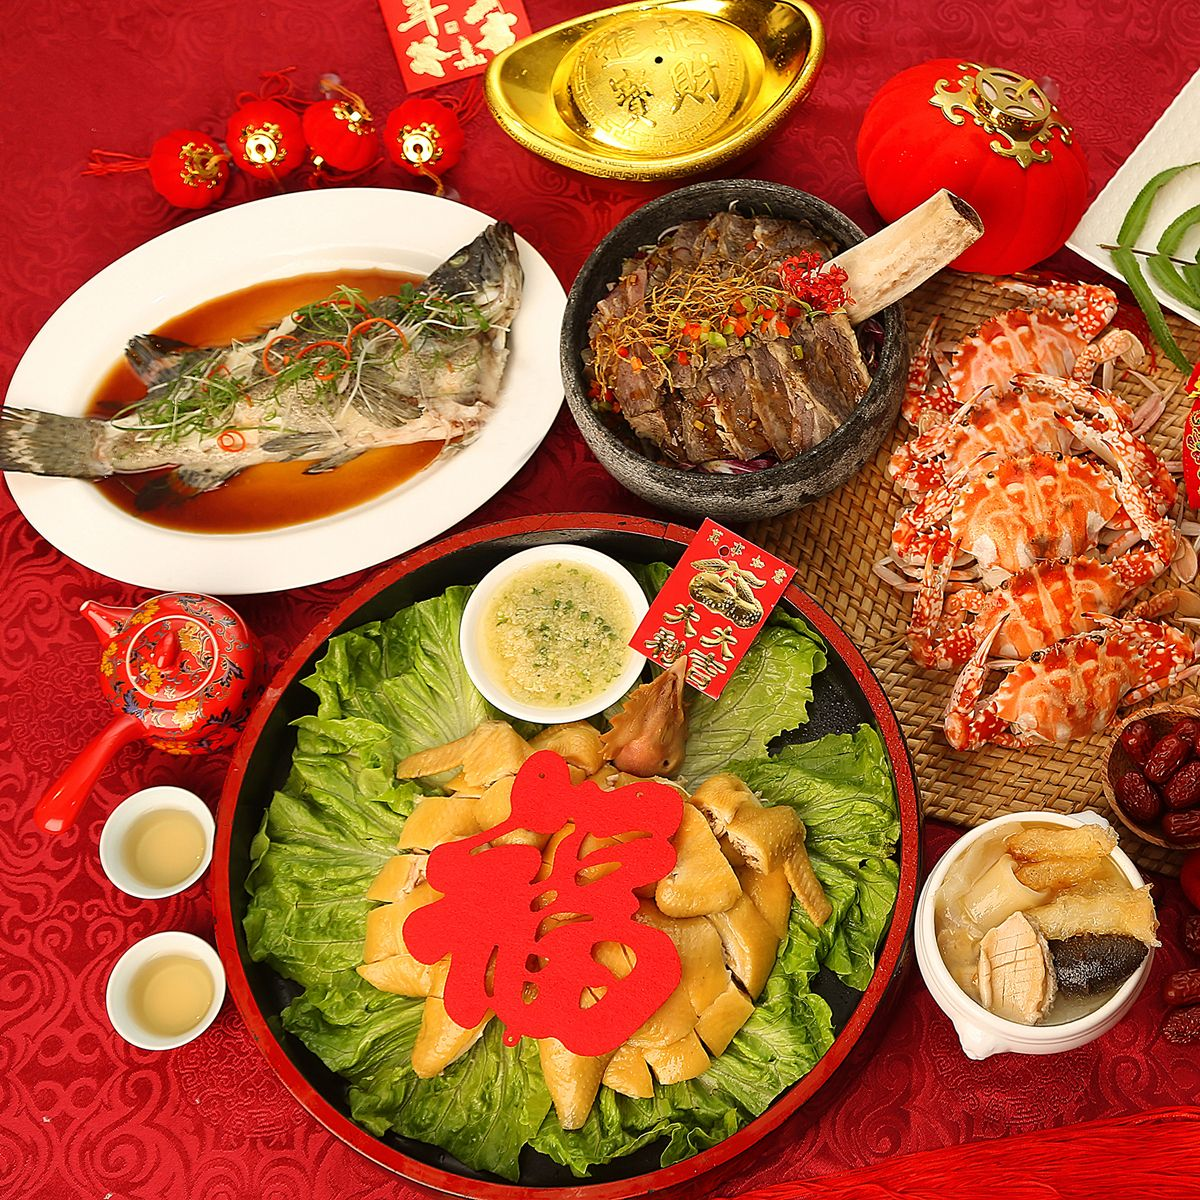 Sanya, China Indulge in a Chinesestyle meal and enjoy